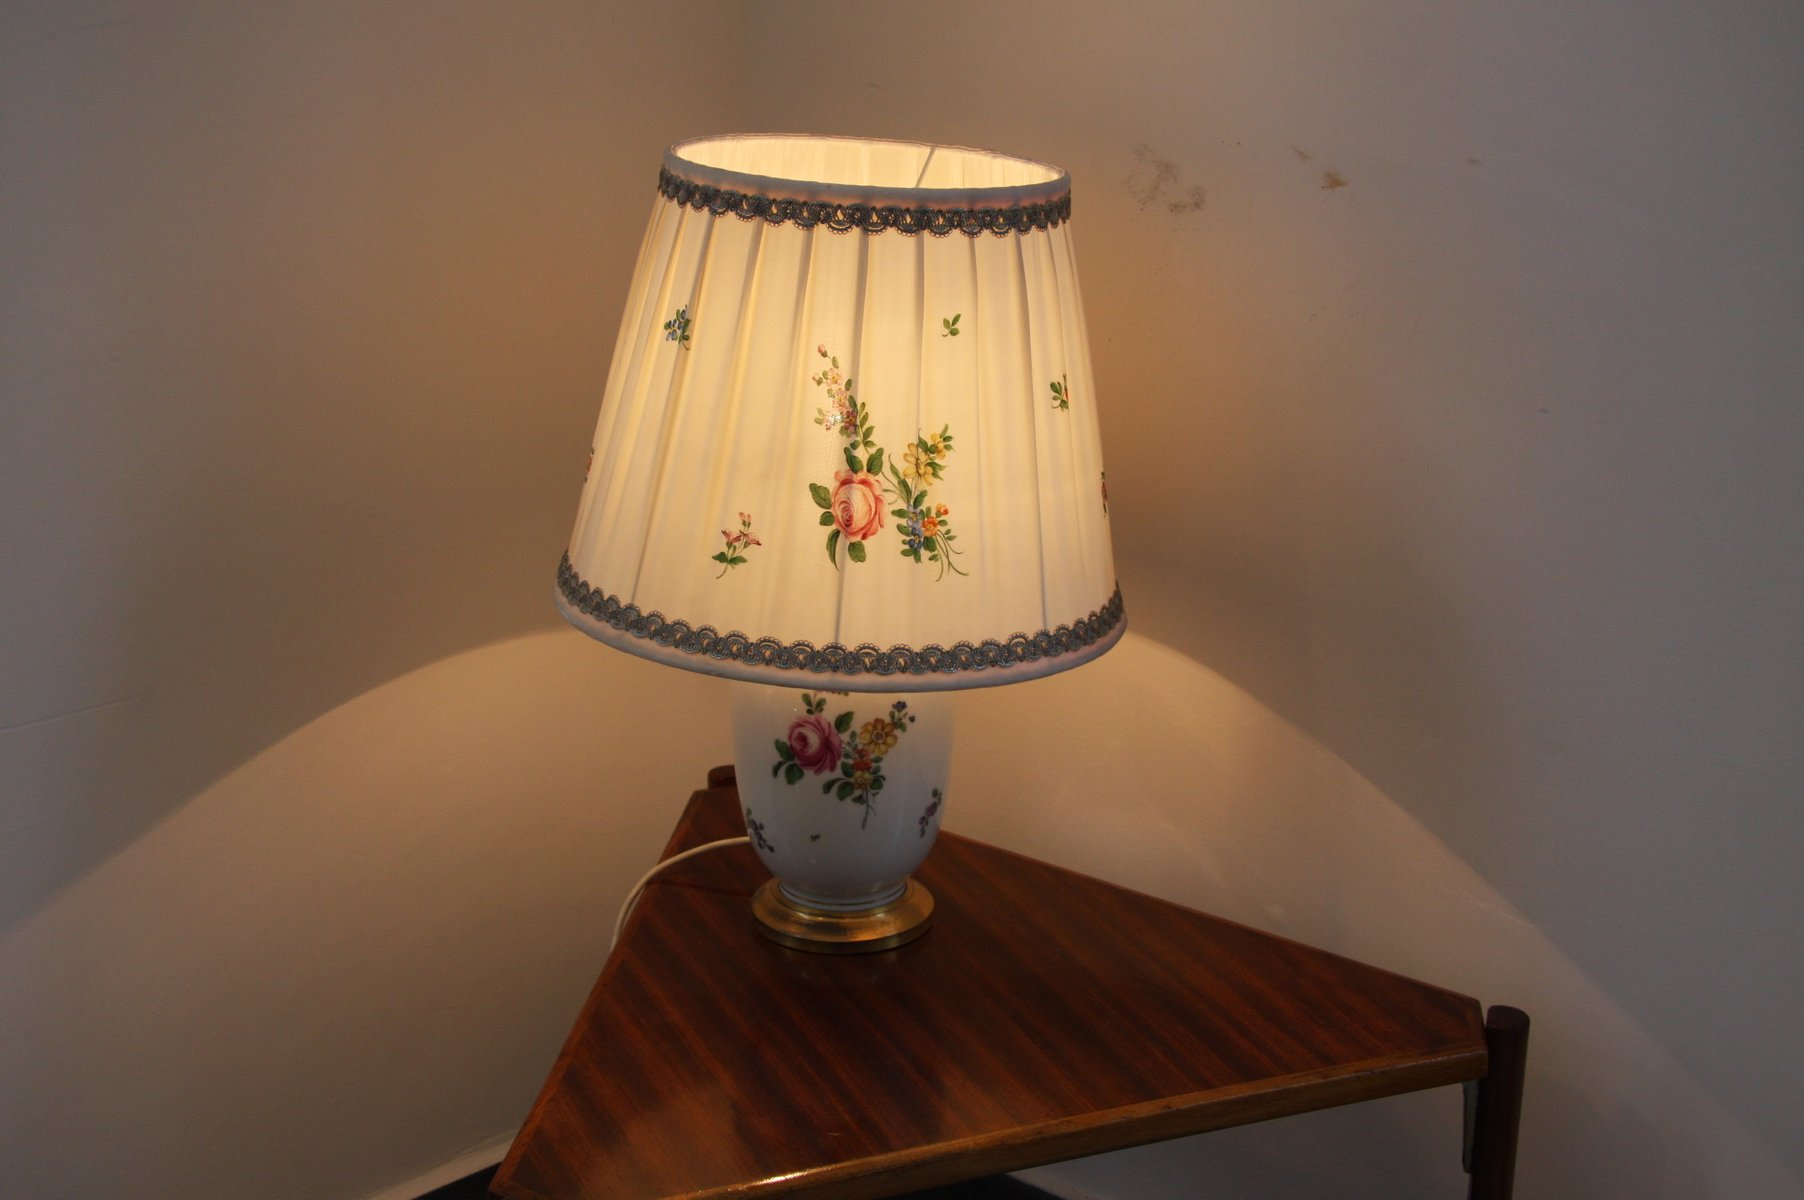 Vintage Porcelain Table Lamp From Augarten For Sale At Pamono